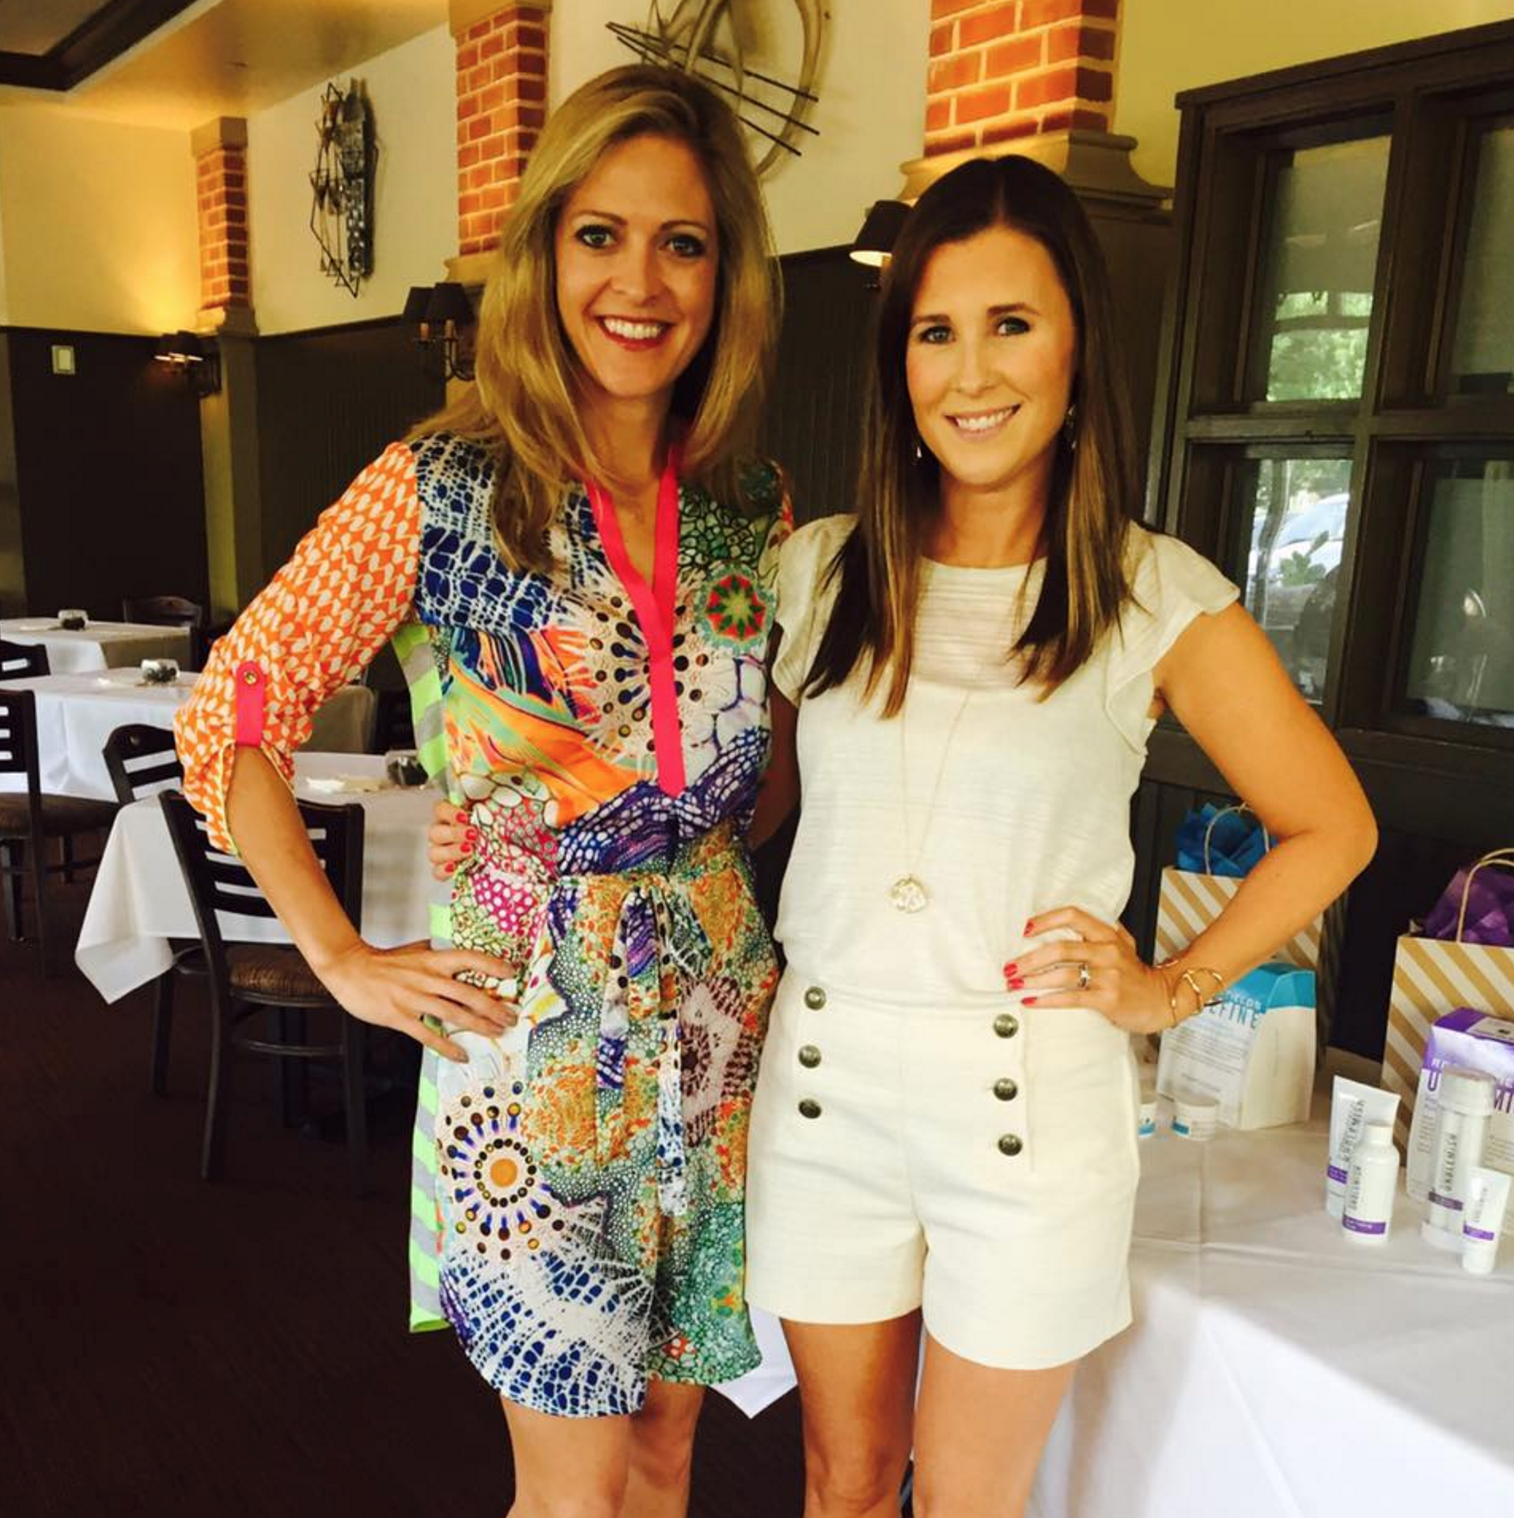 A Weekend with Rodan + Fields